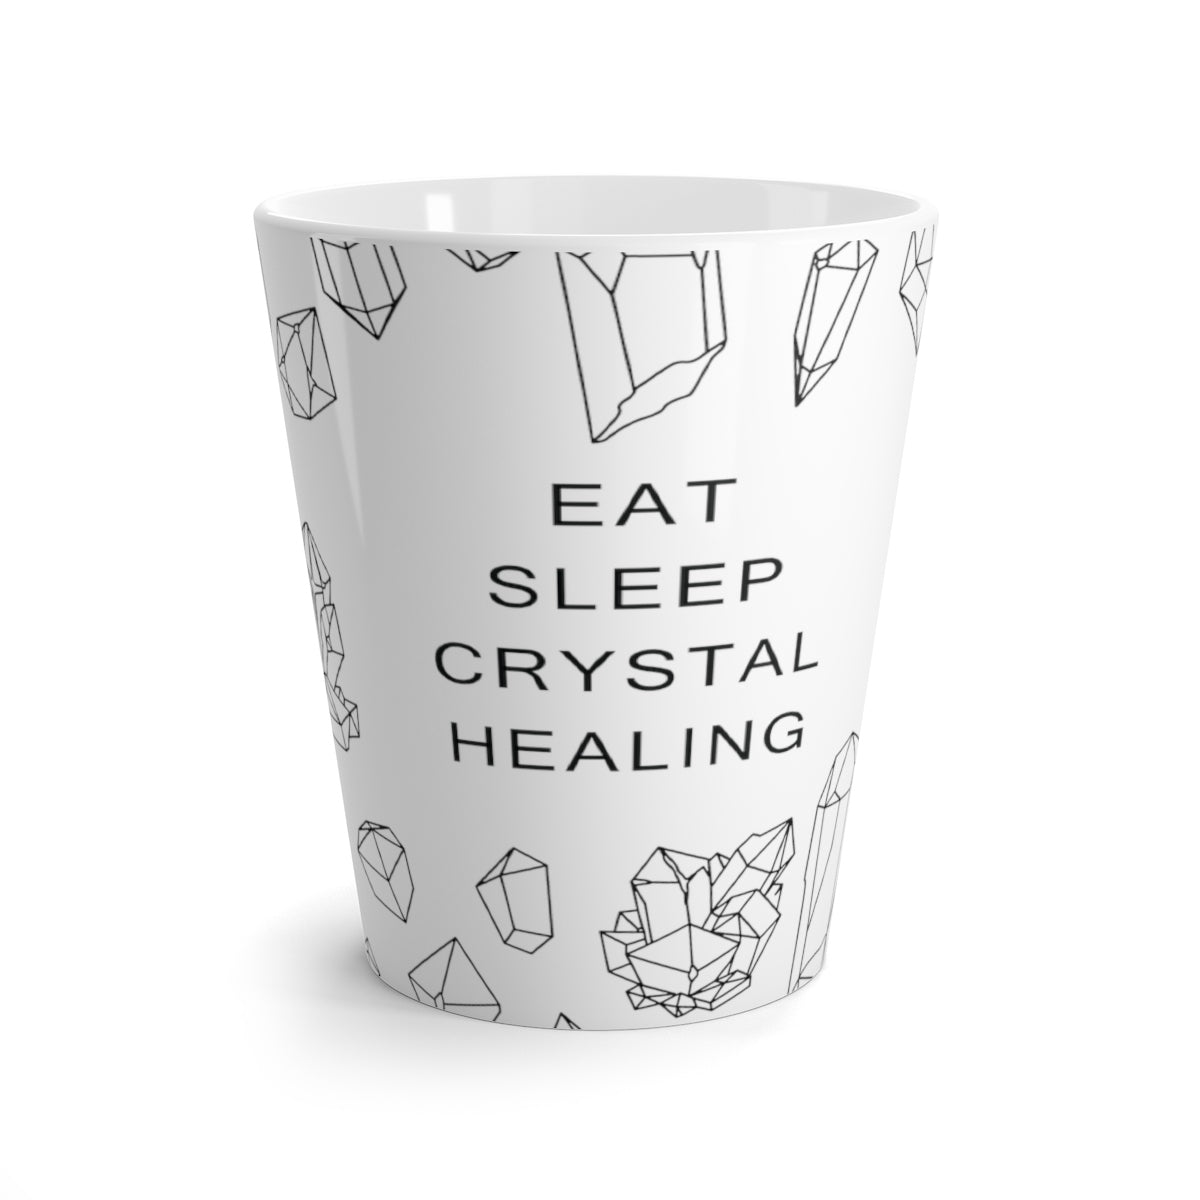 Many Crystal  Eat Sleep Healing Crystal Latte mug